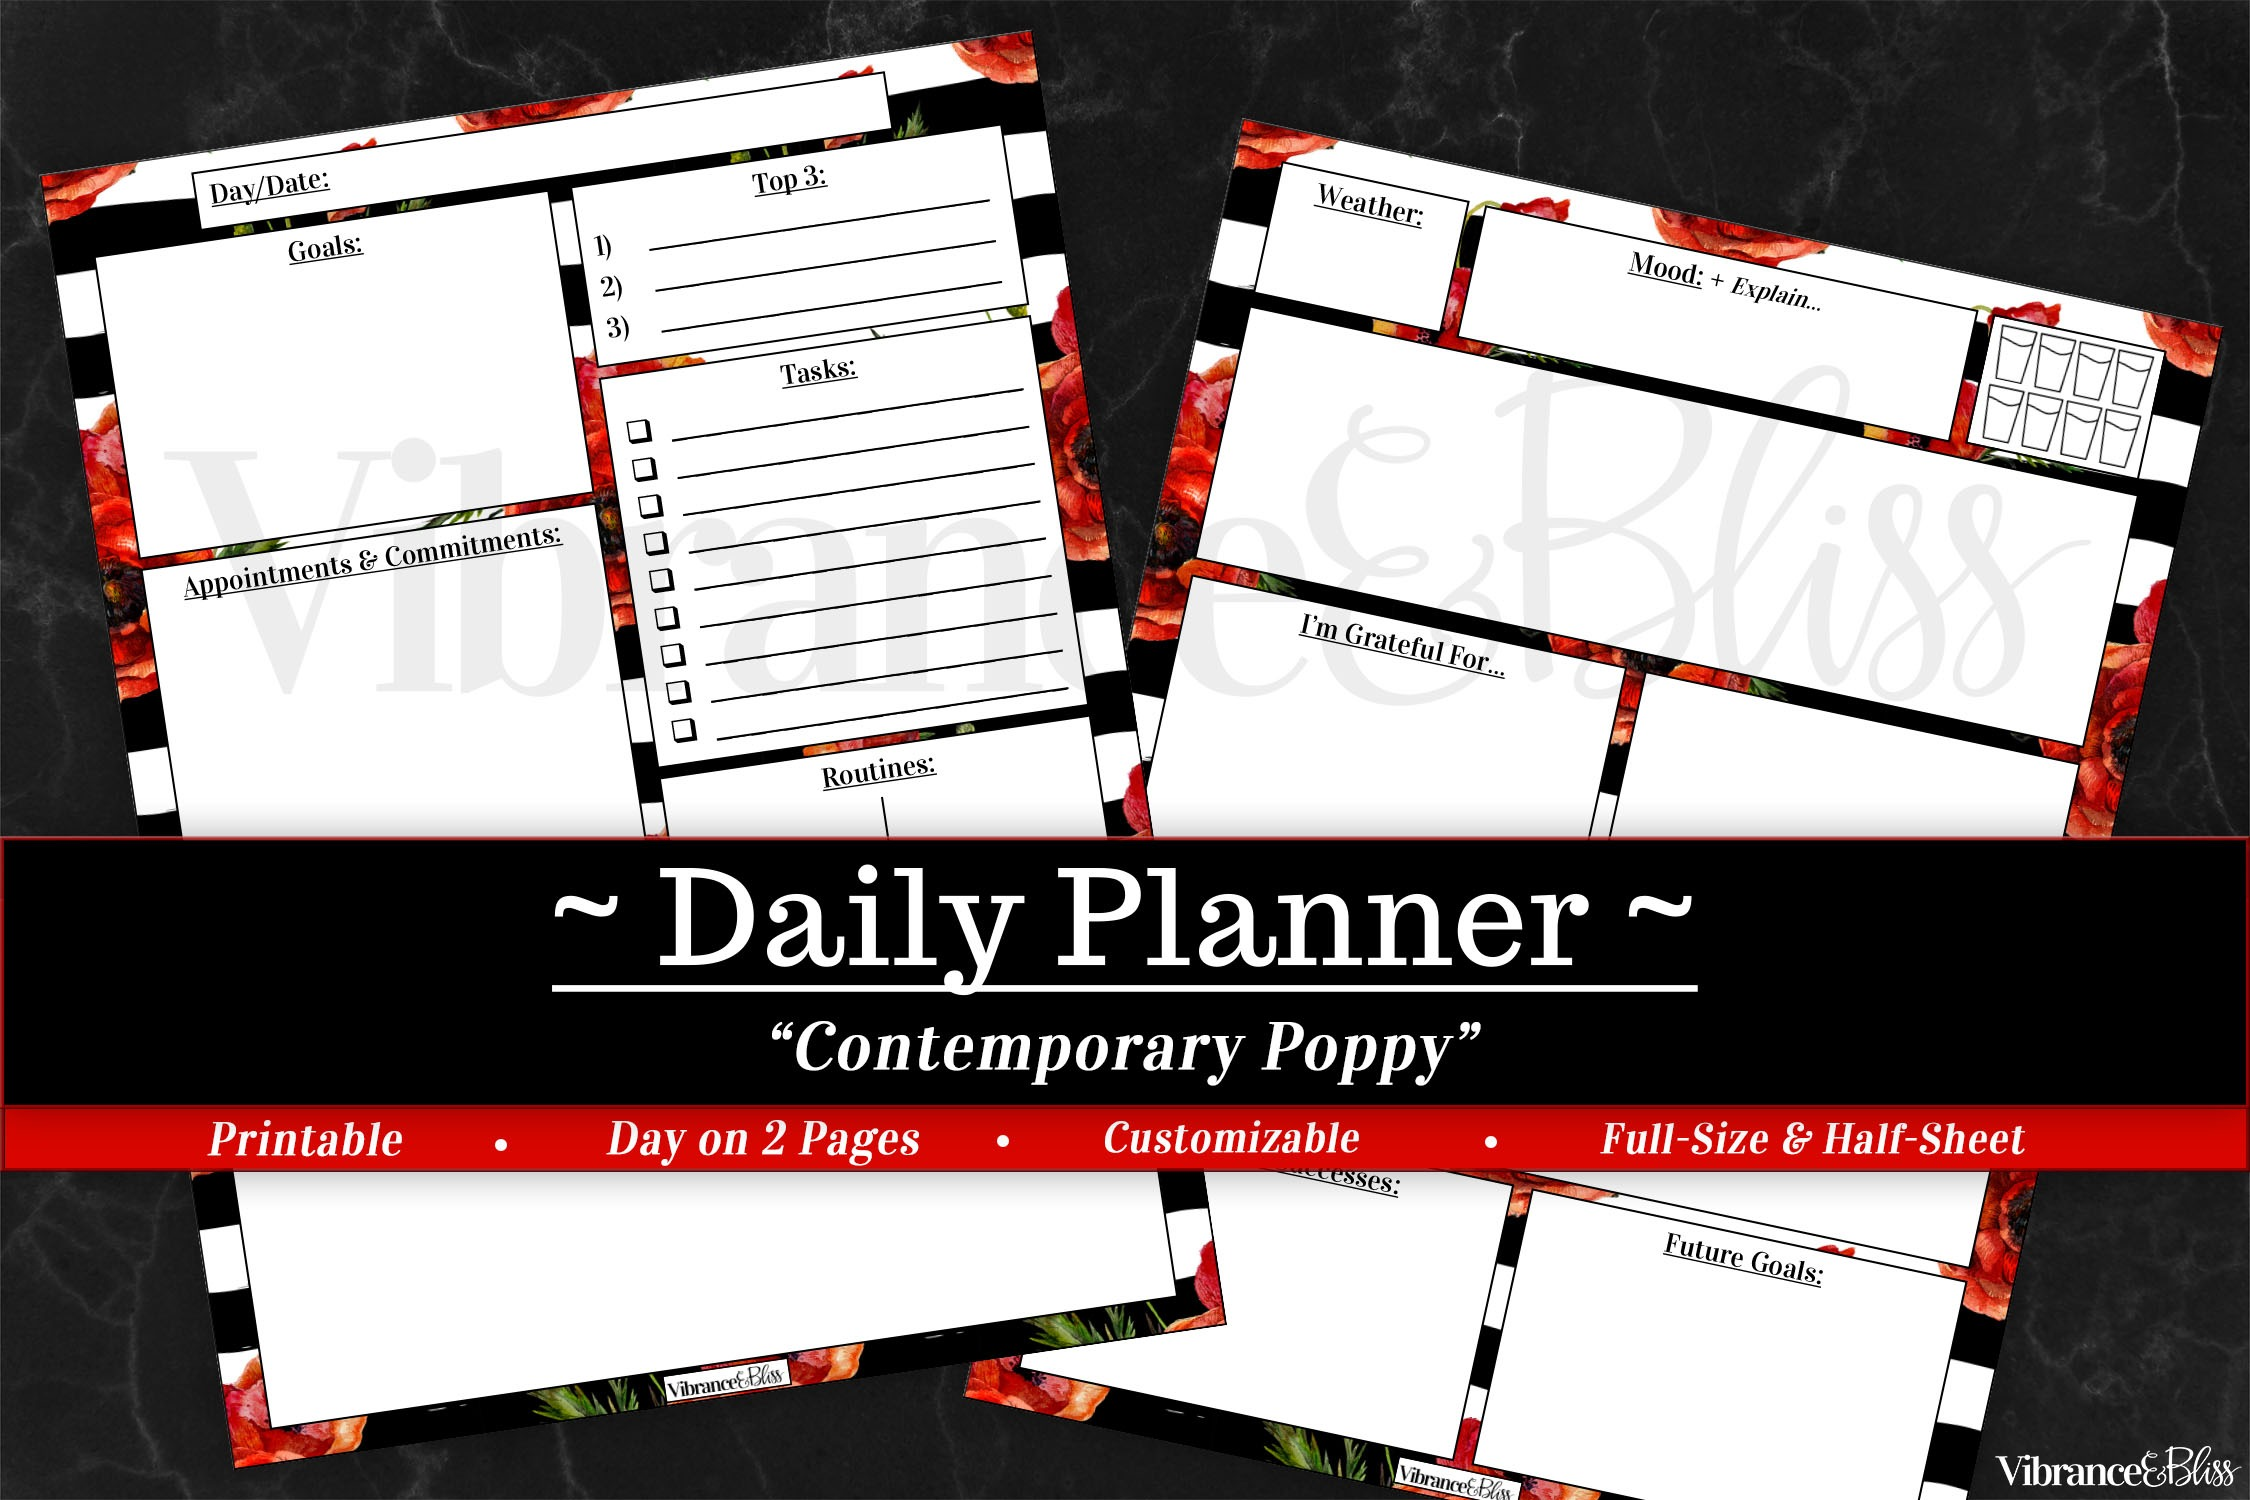 Daily Planner (2p)